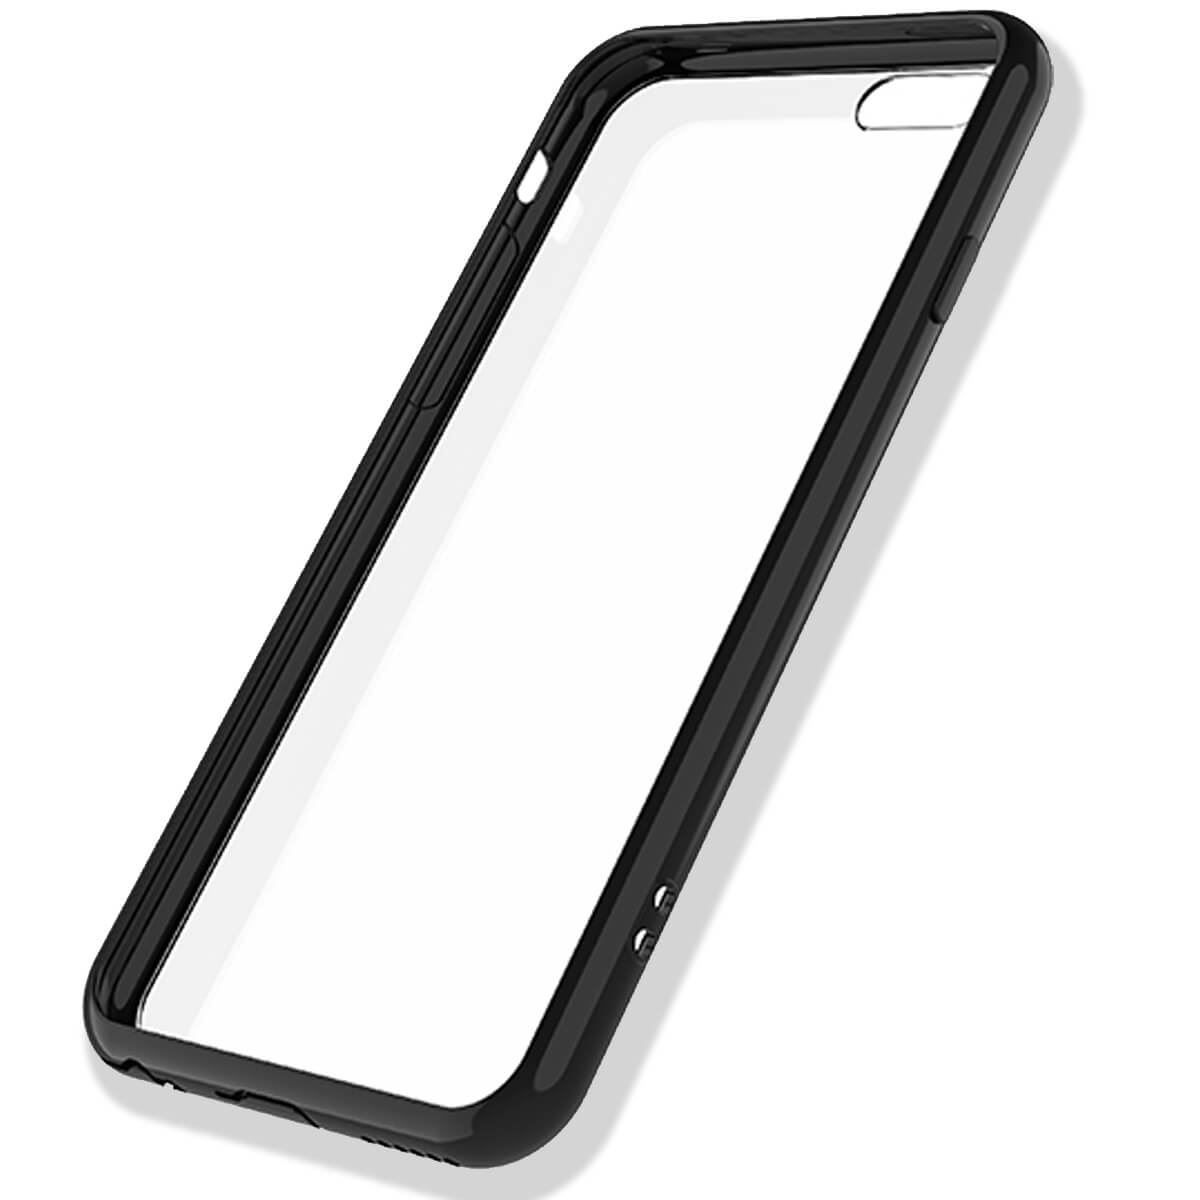 Shockproof-Case-For-Apple-iPhone-X-8-7-Plus-6-5s-Se-Clear-Slim-Bumper-TPU-Cover thumbnail 3